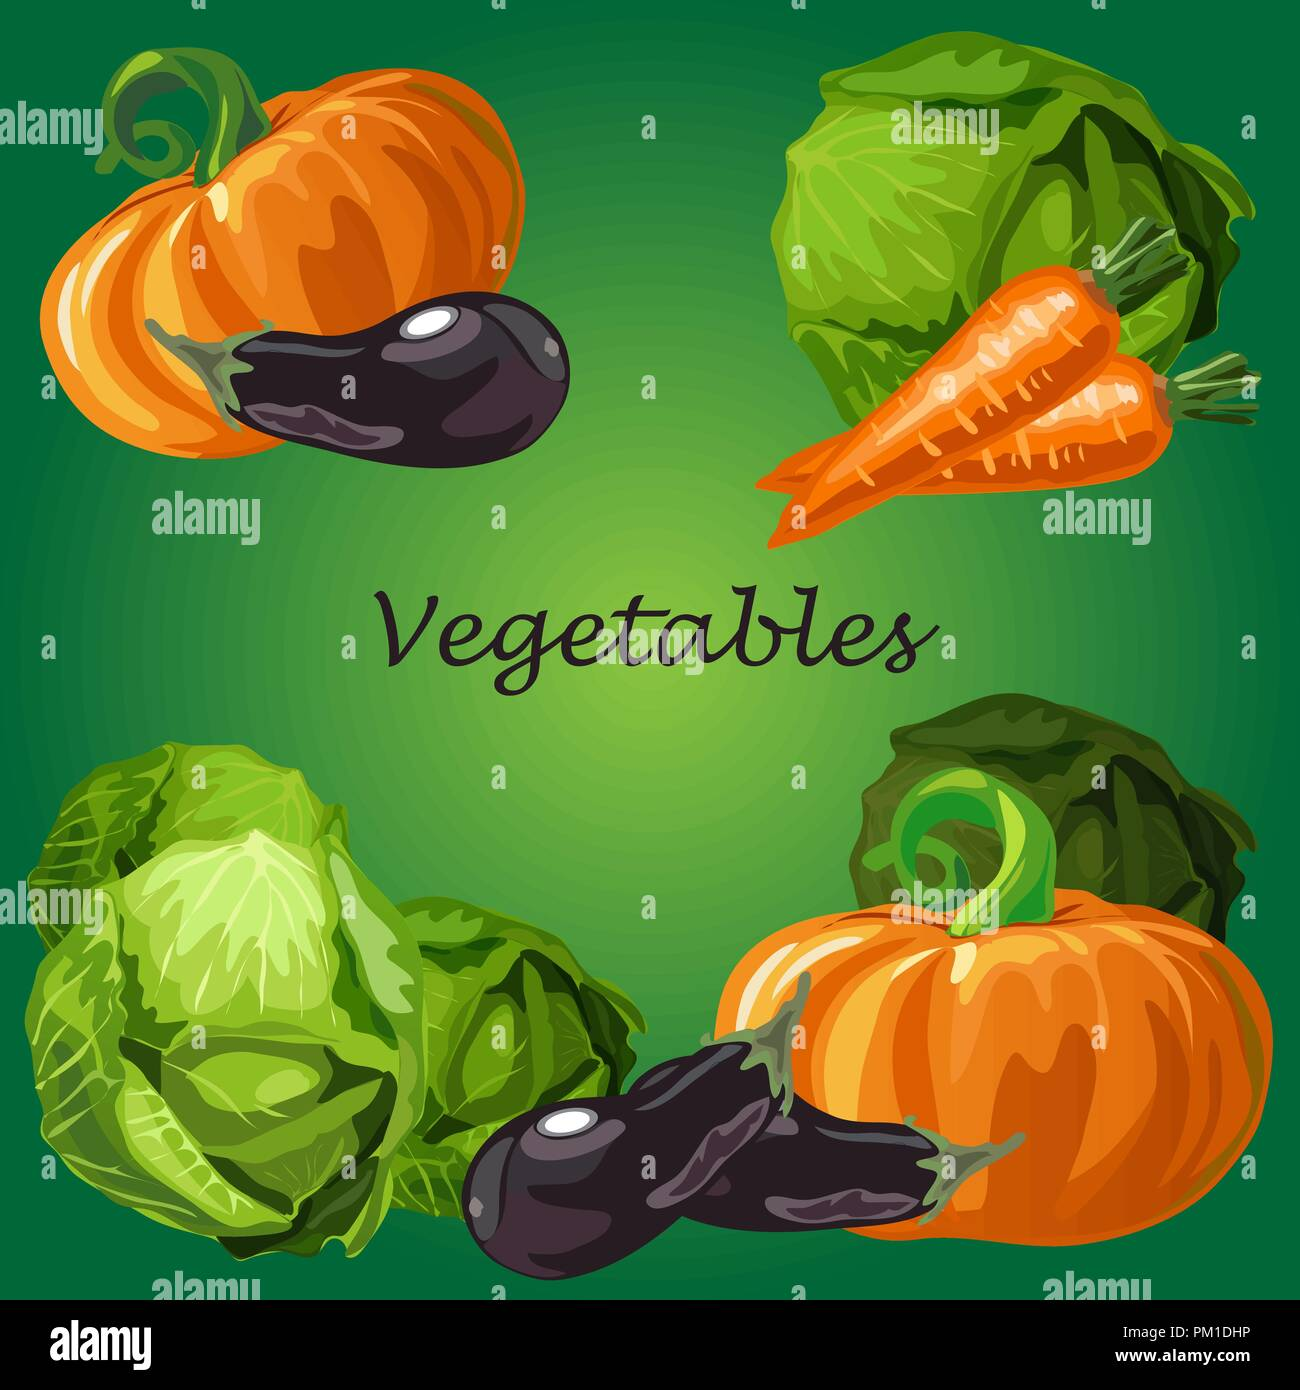 Poster with a picture of ripe and healthy vegetables isolated on green background. Ripe pumpkin, eggplant and cabbage. Organic food healthy diet and fitness menu. Vector cartoon close-up illustration. Stock Vector